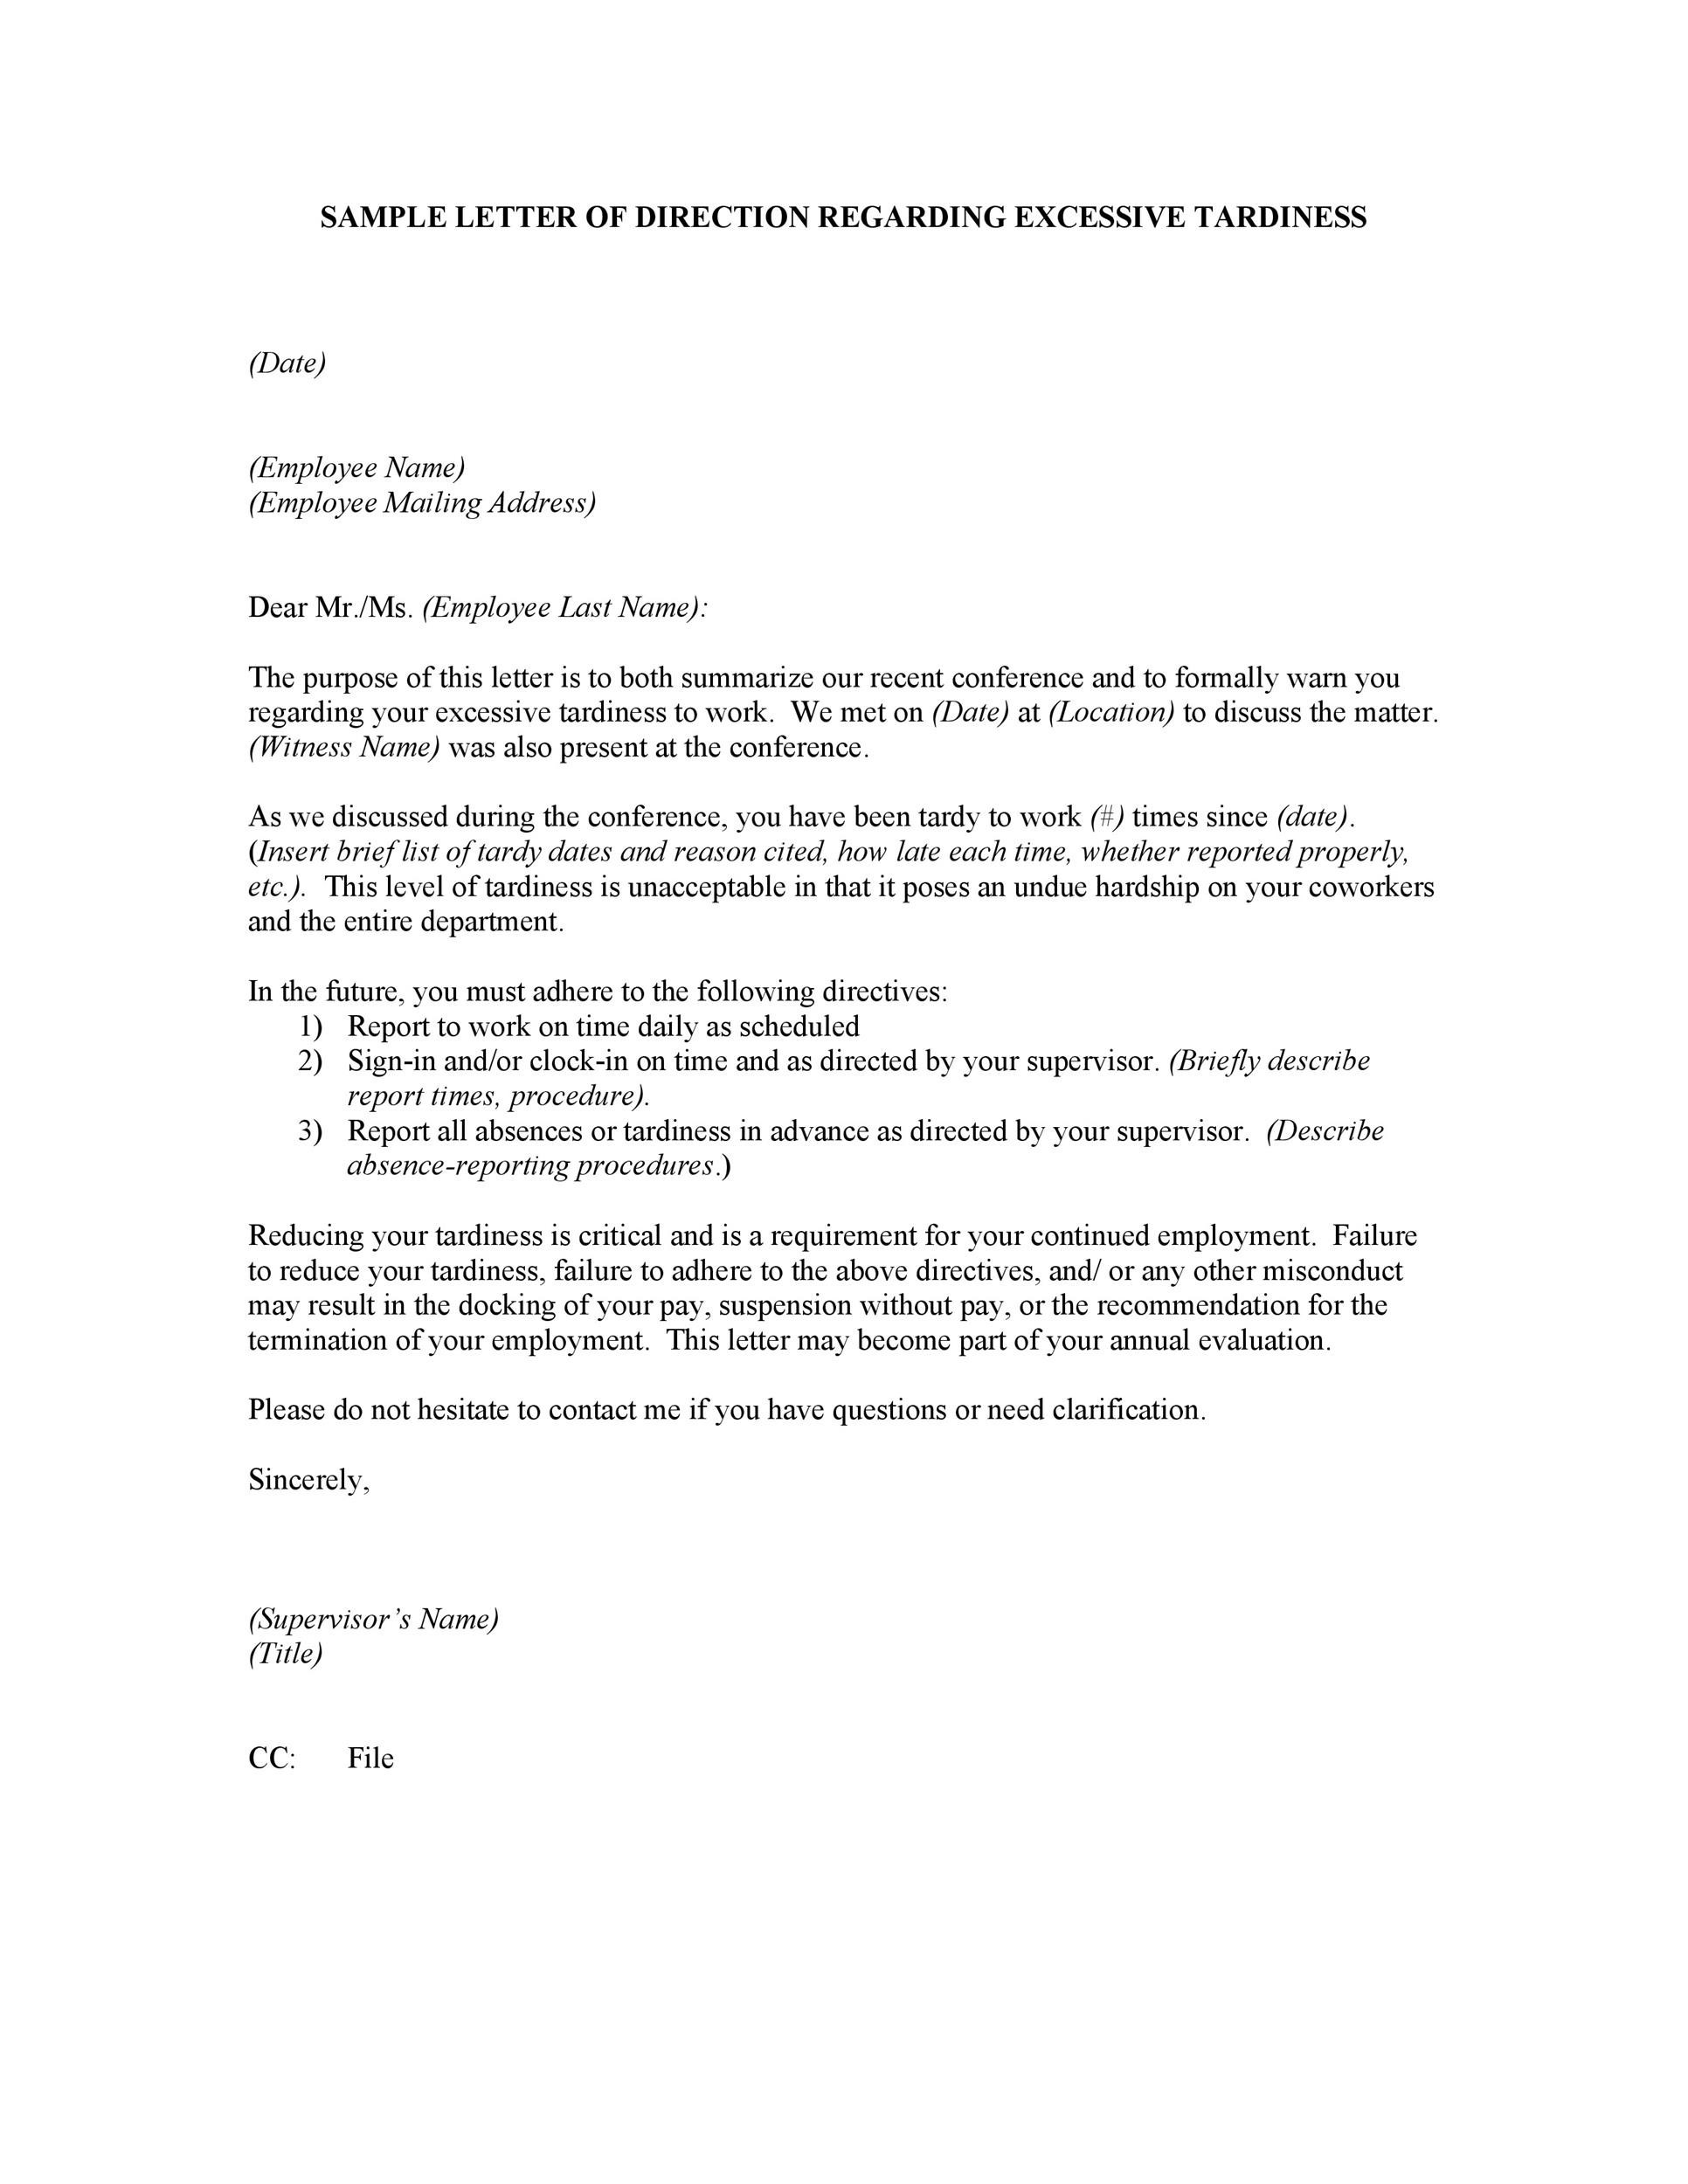 Warning Letter To Employee For Misconduct from templatelab.com